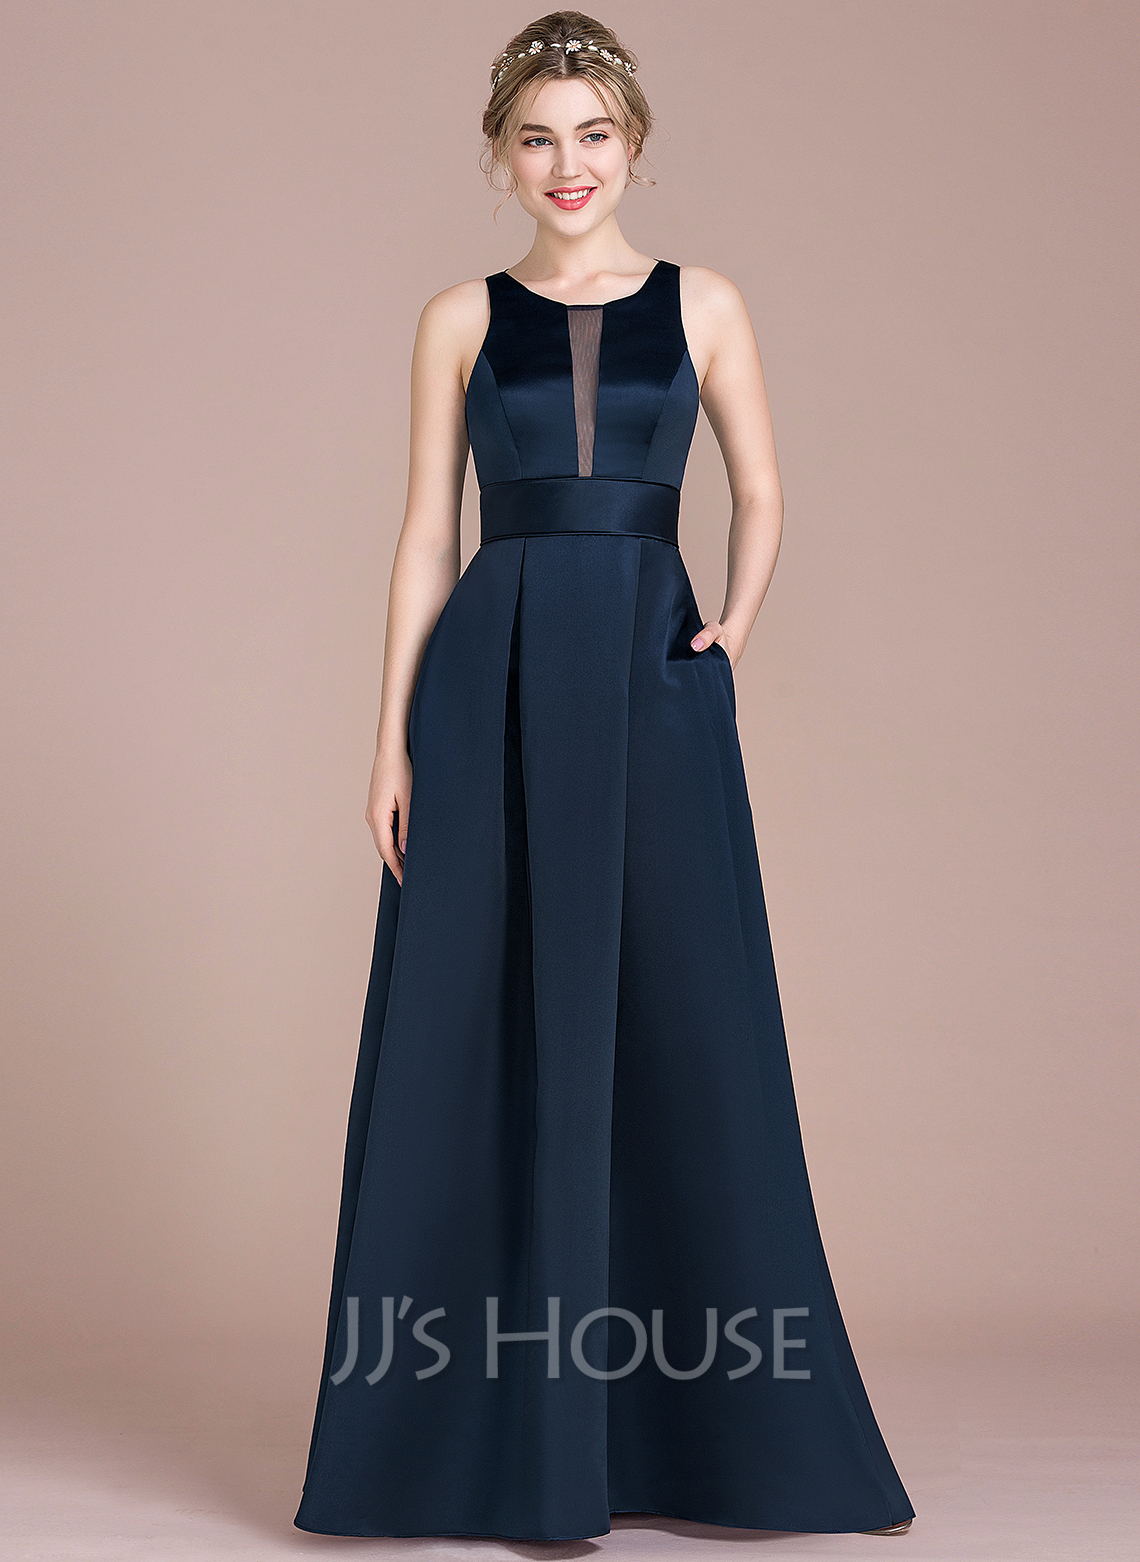 Scoop Neck Floor-Length Satin Bridesmaid Dress With Pockets